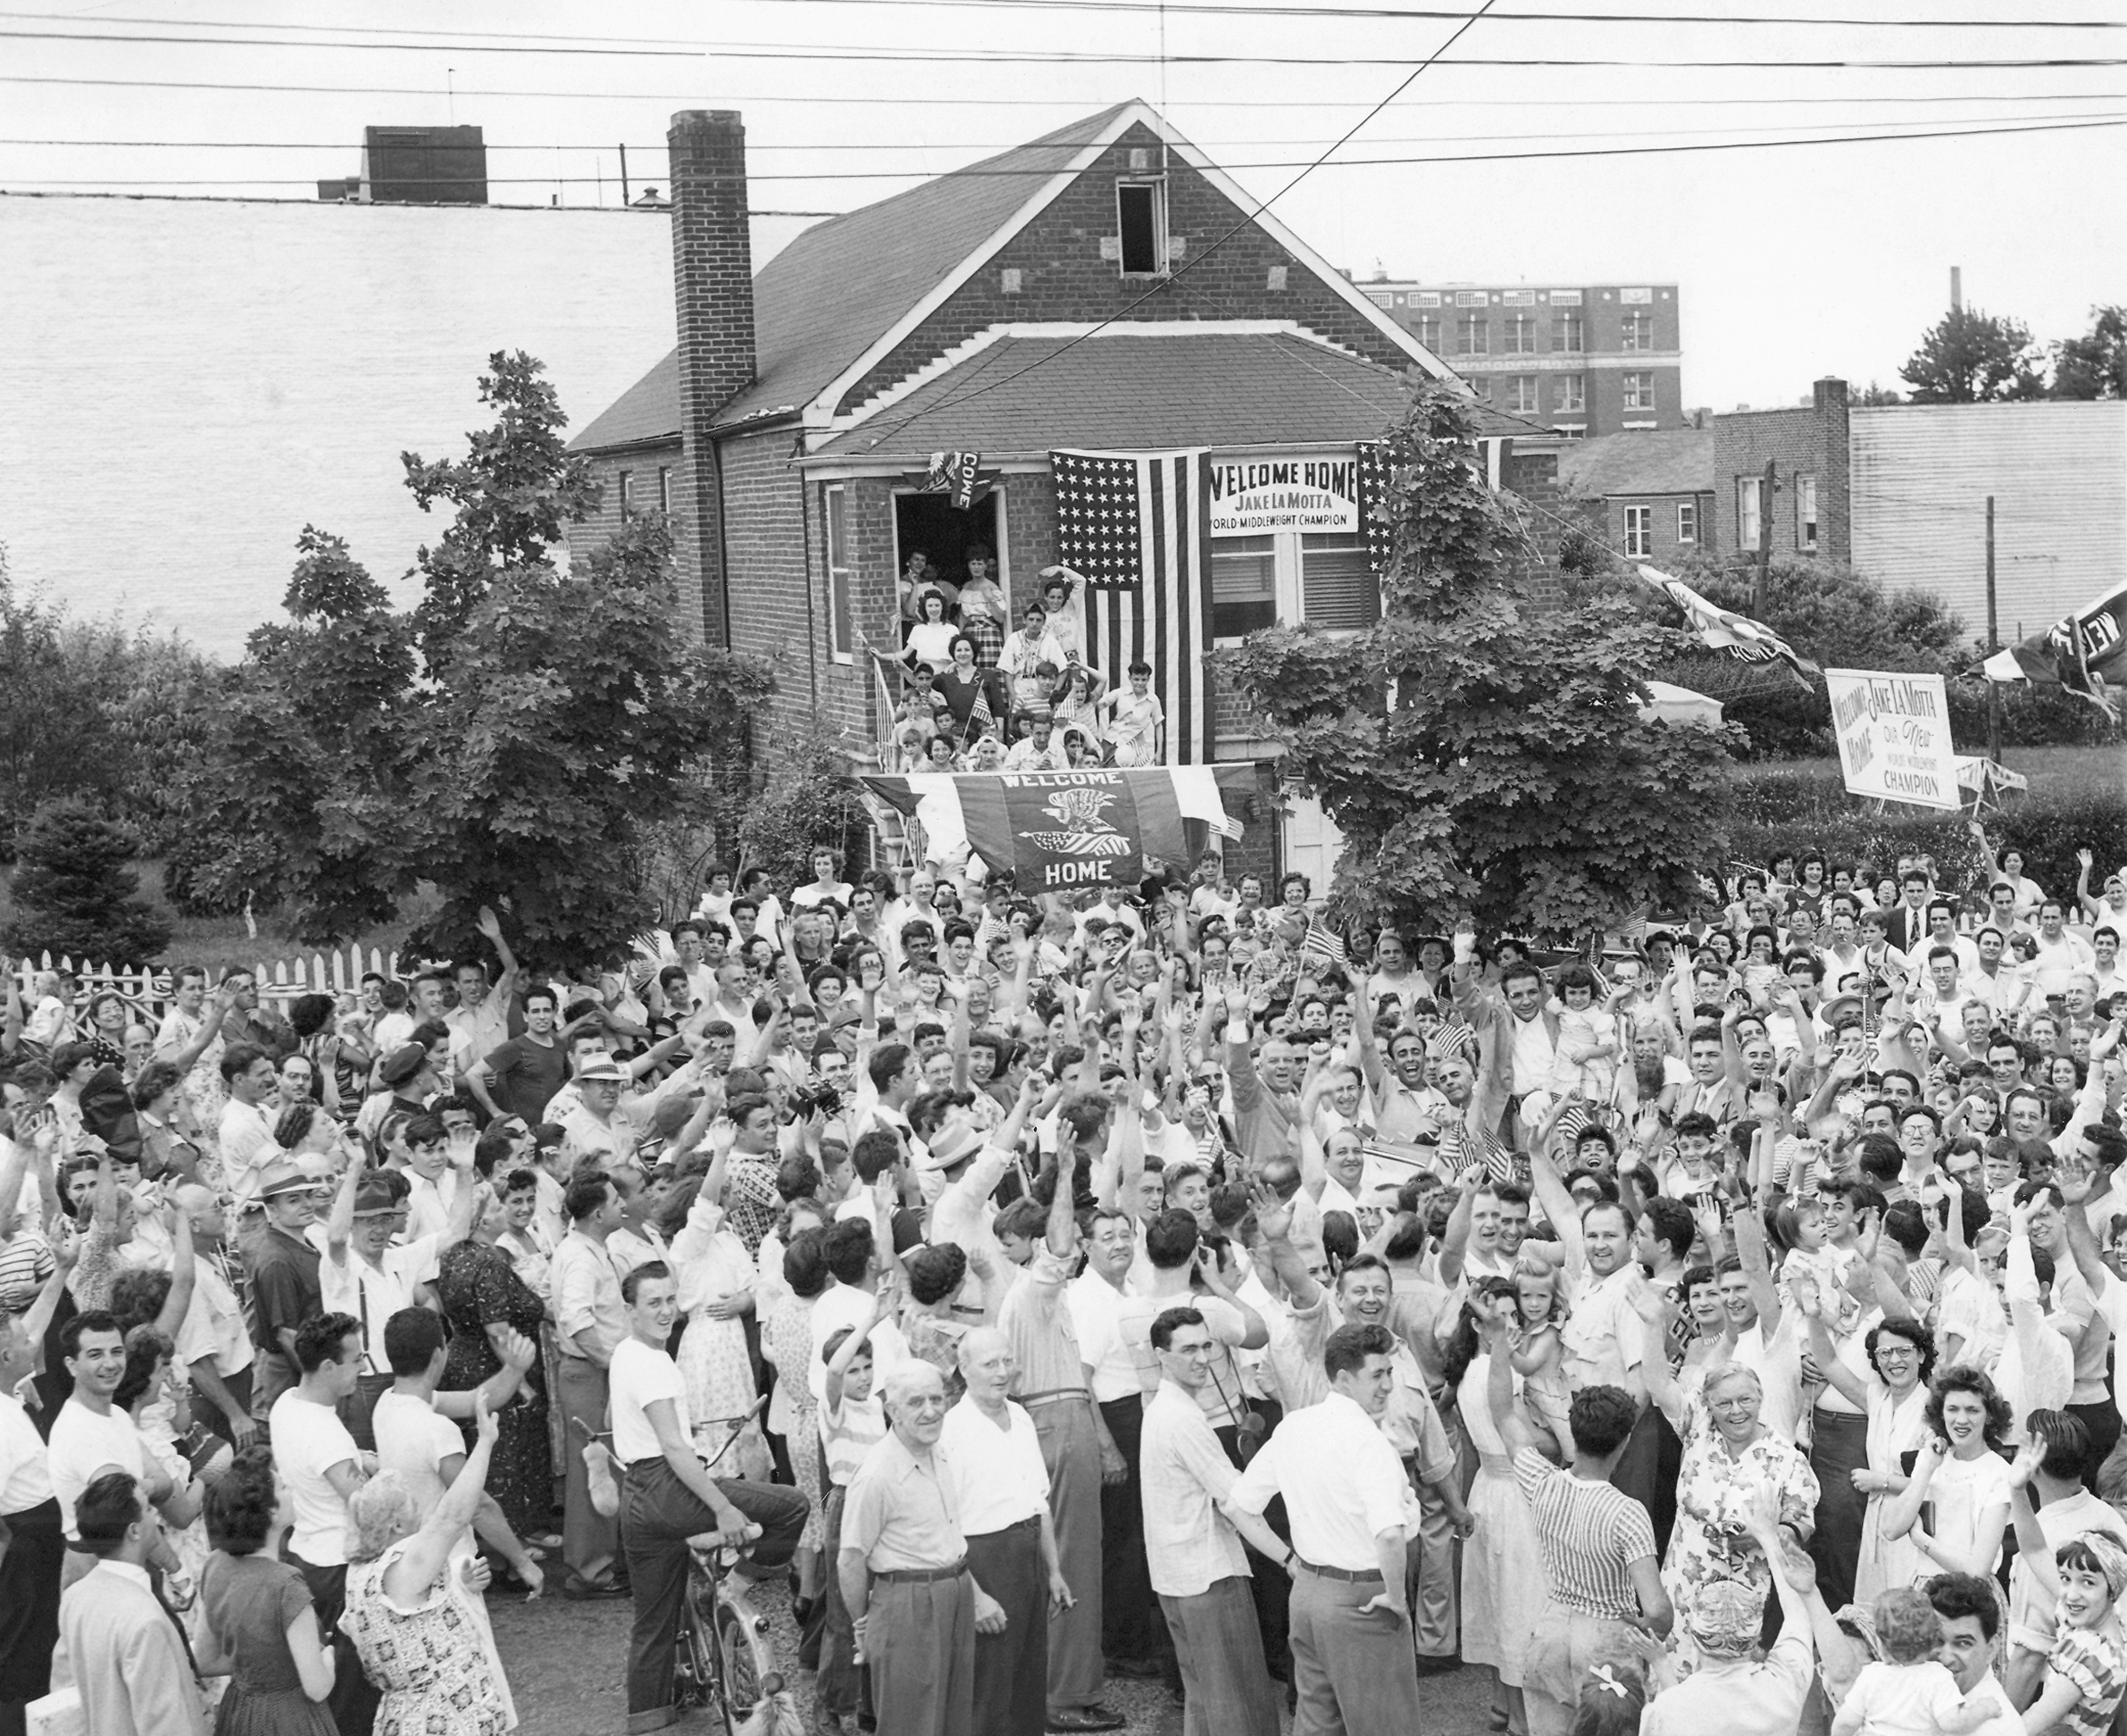 "FILE - In this June 18, 1849, file photo, a crowd gathers in front of Jake Lamotta's home in the Bronx borough of New York, welcoming him home from Detroit, Mich., where he won the middleweight boxing championship against Marcel Cerdan. LaMotta, whose life was depicted in the film ""Raging Bull,"" died Tuesday, Sept. 19, 2017, at a Miami-area hospital from complications of pneumonia. He was 95. (AP Photo/File)"